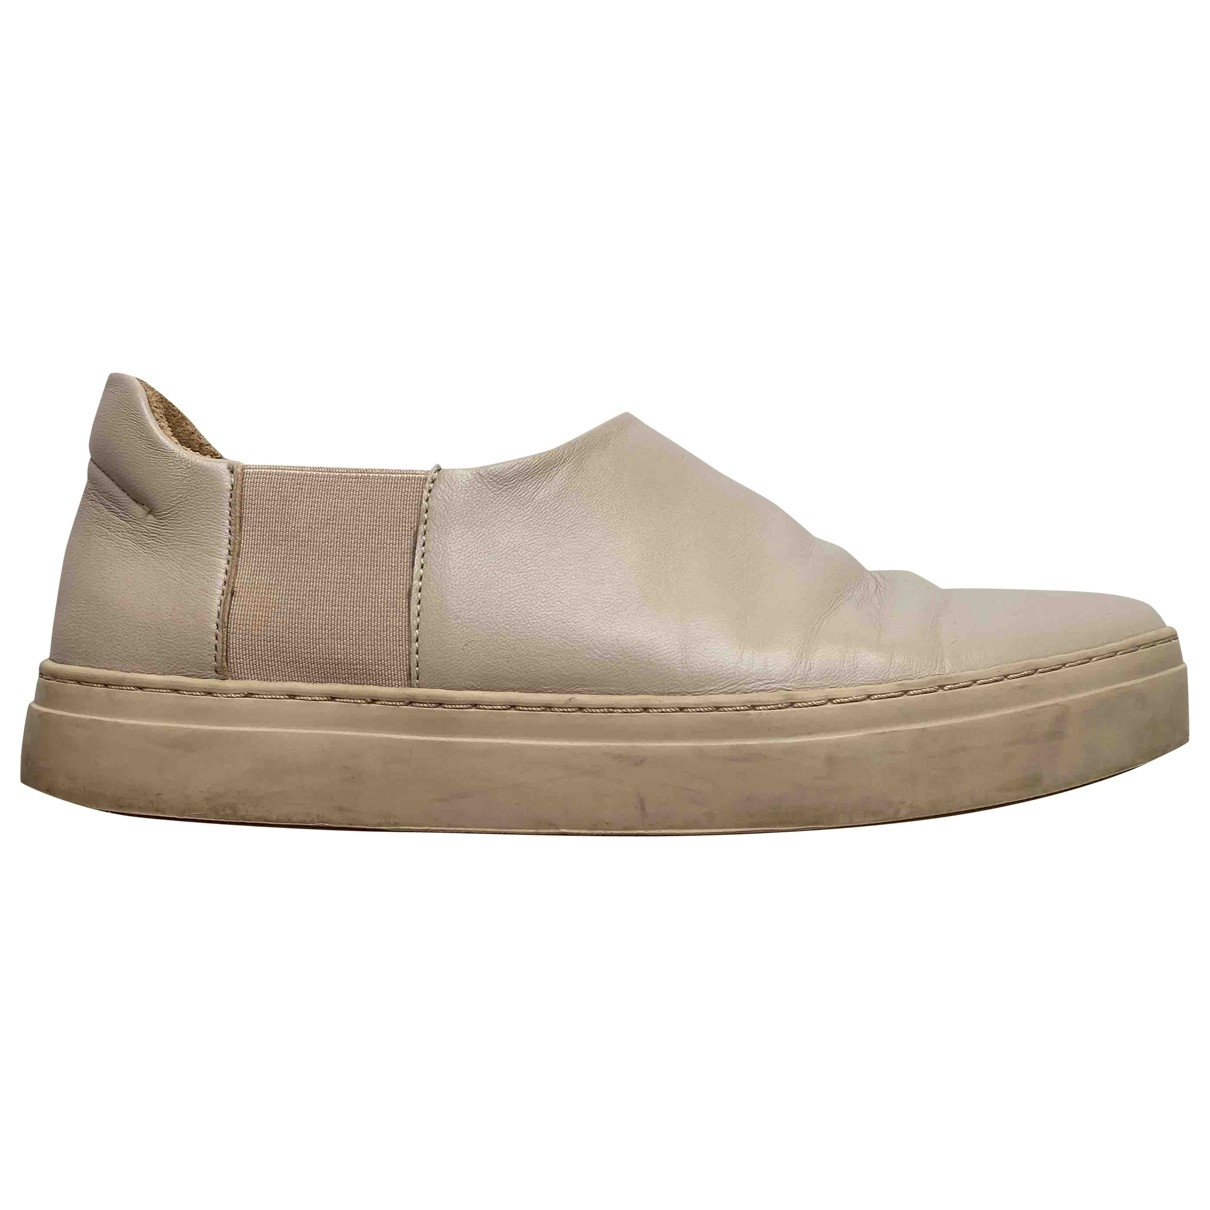 Cos \N Beige Leather Trainers for Women 39 EU